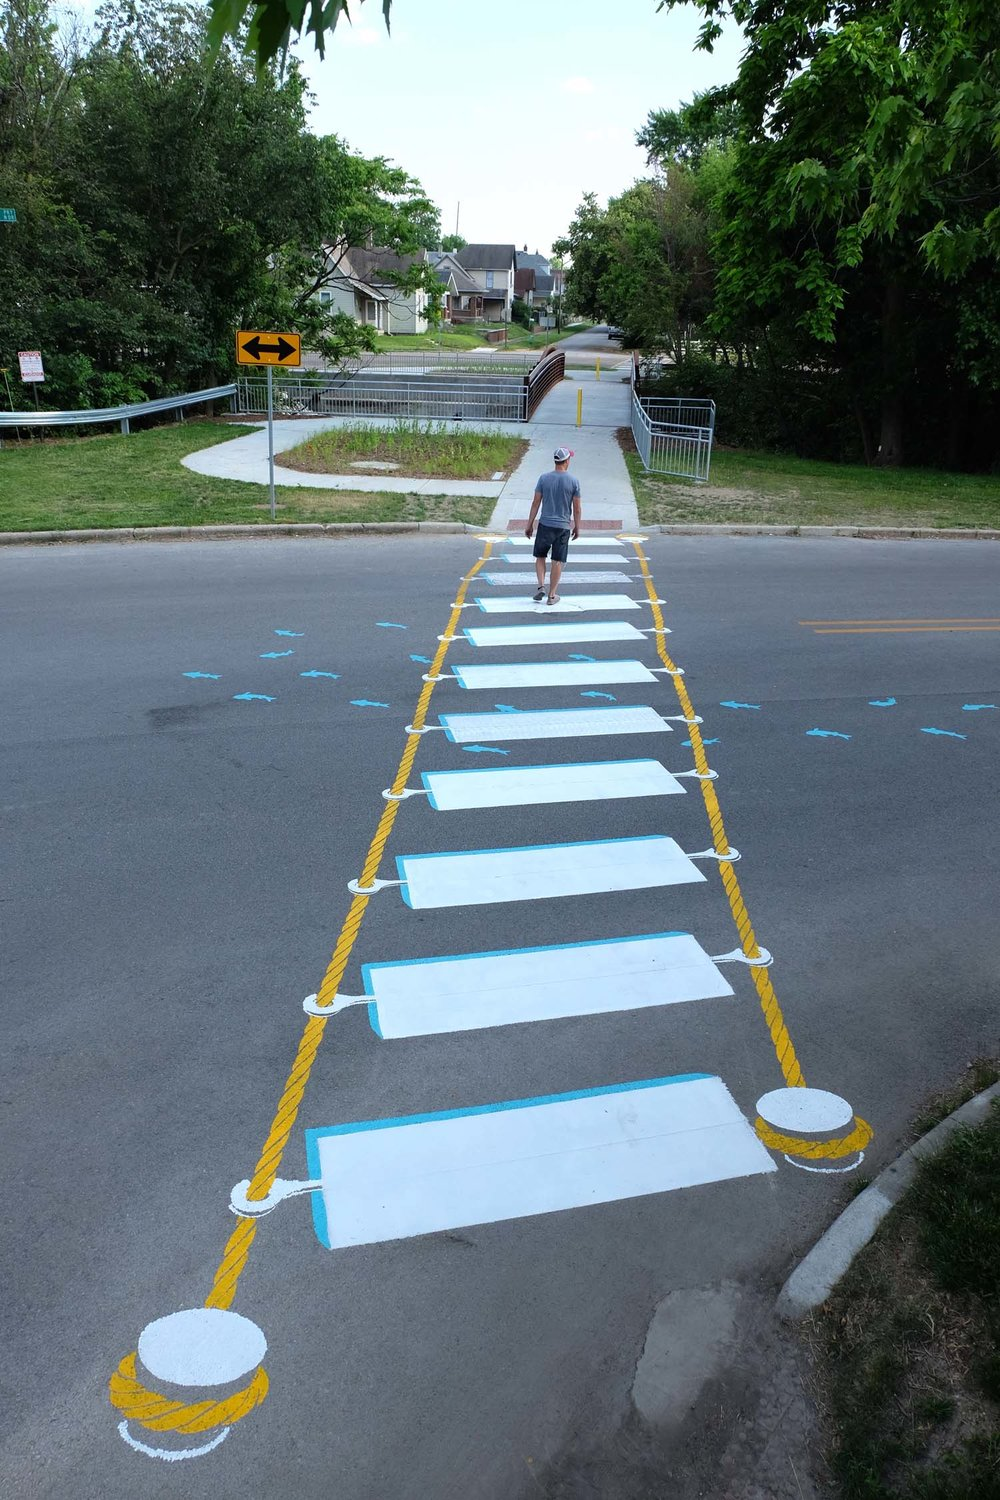 street-art-piste-ciclabili-montreal-roadsworth-25